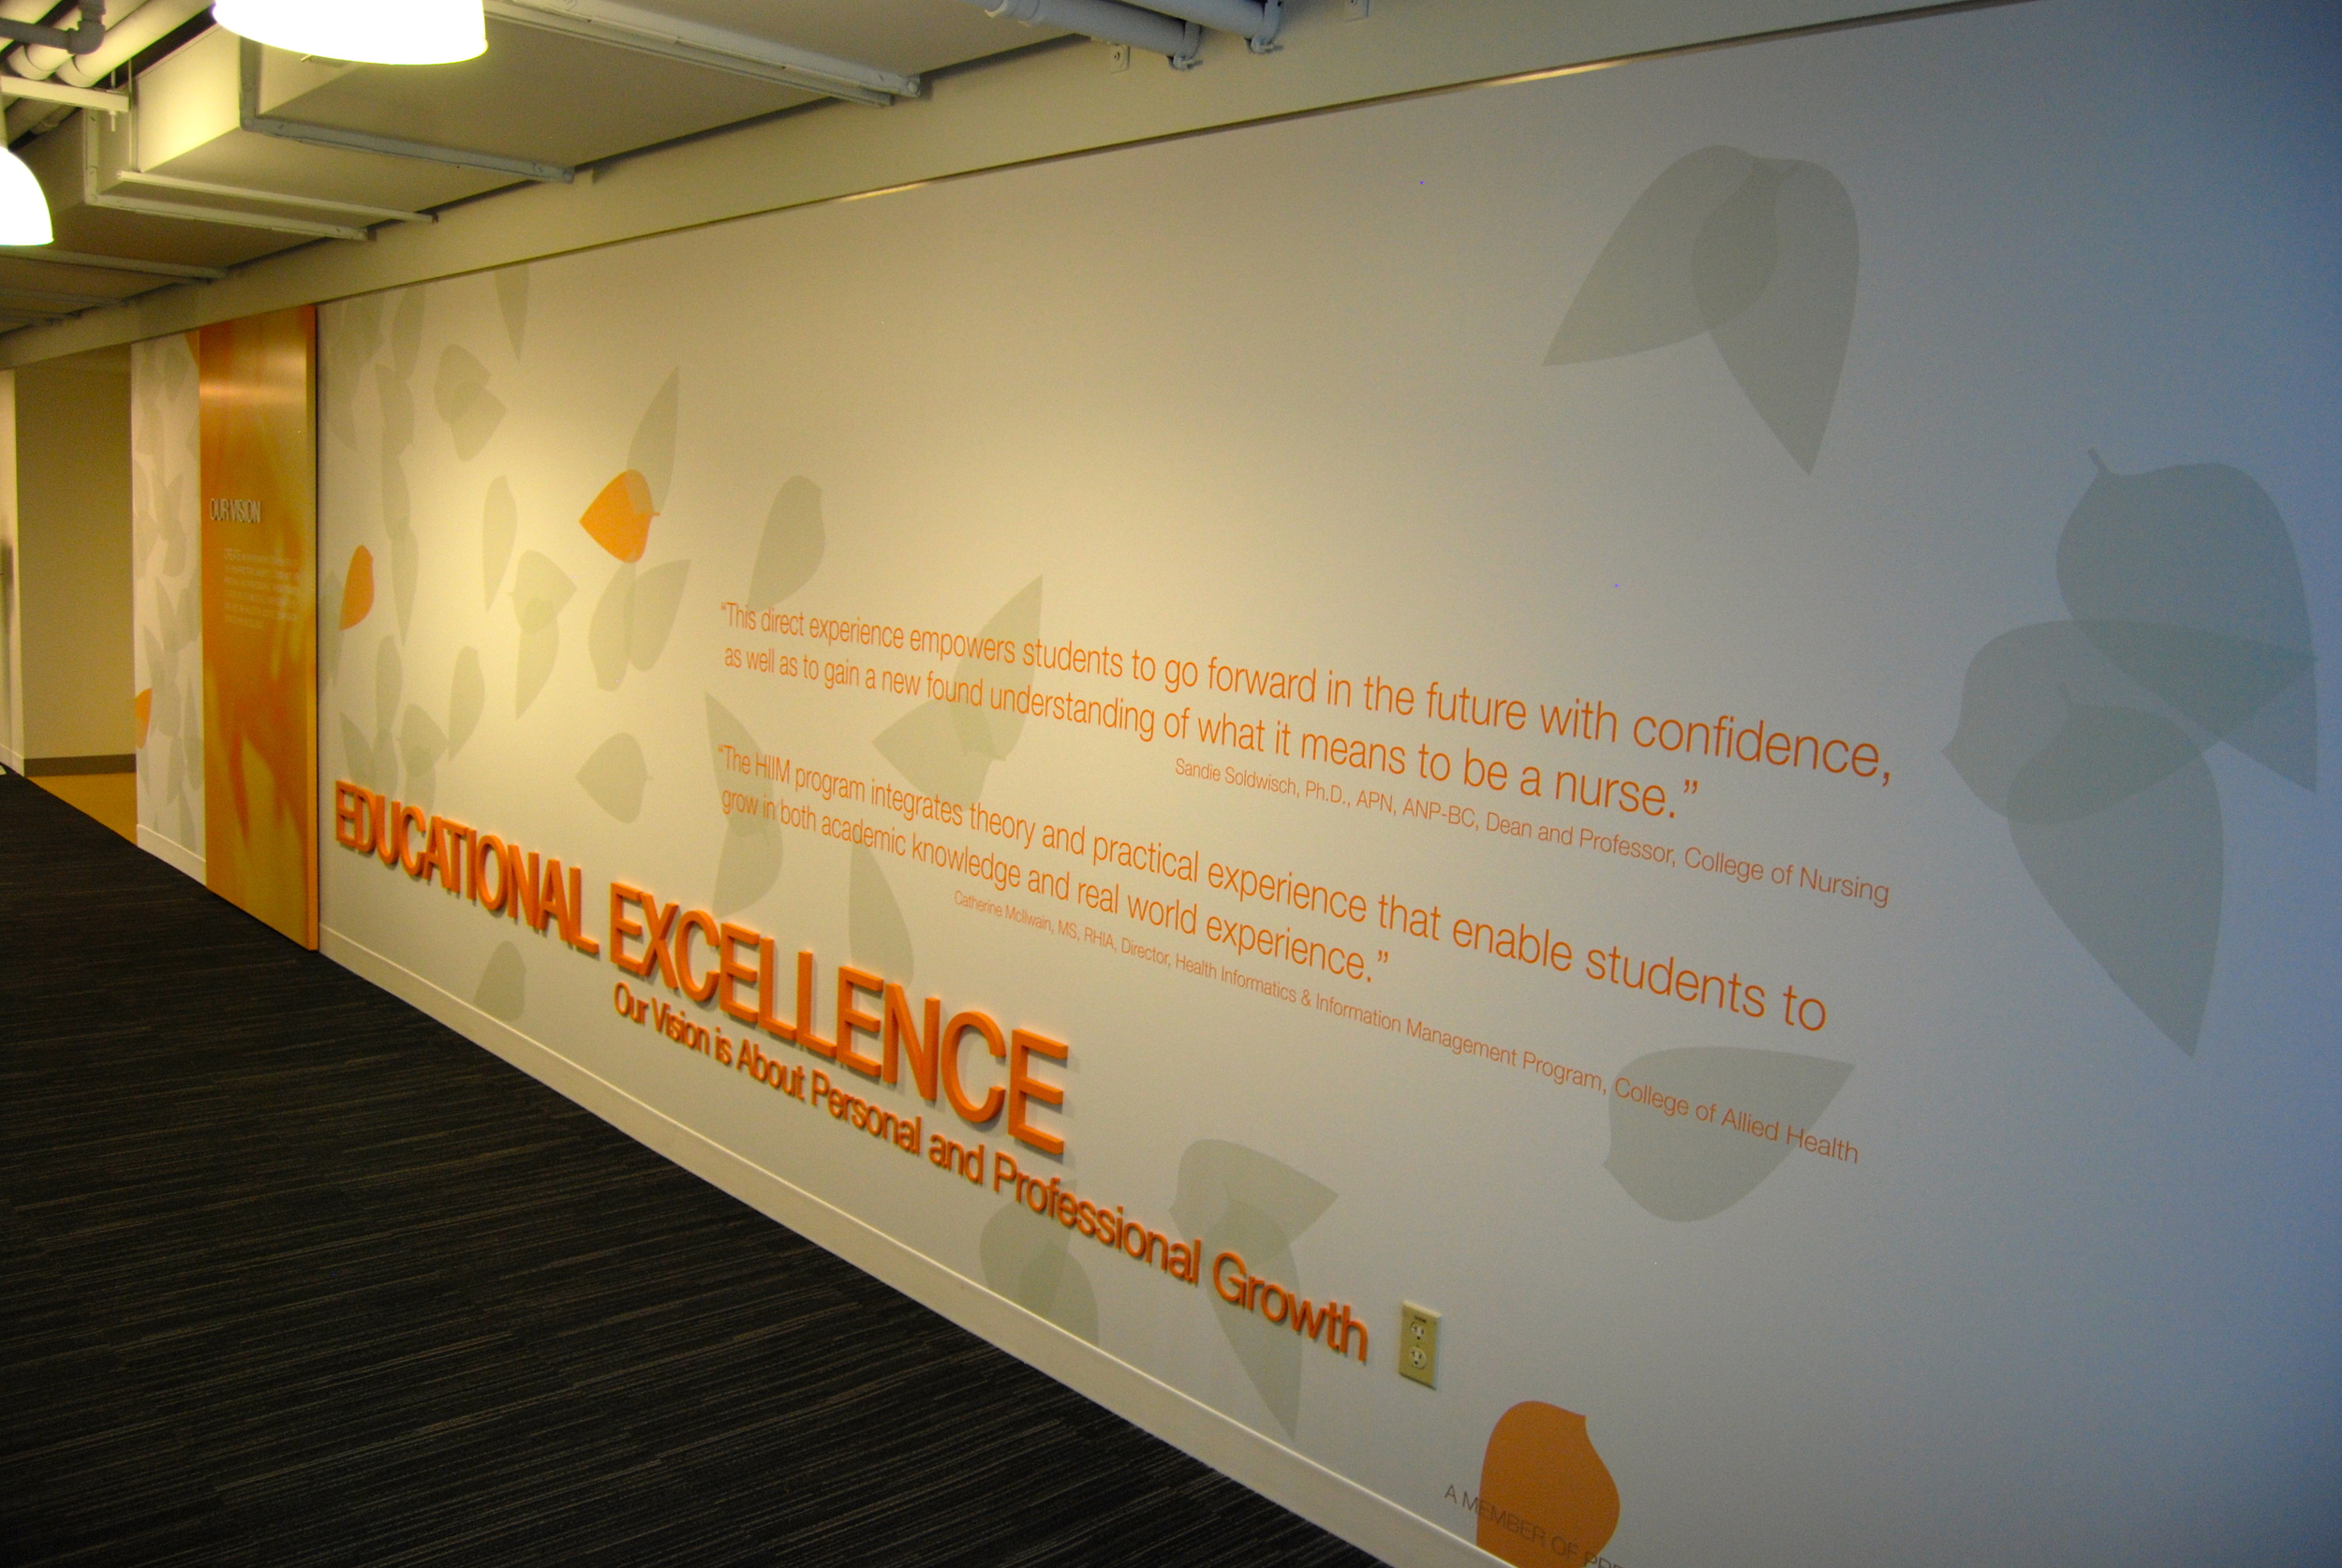 Custom-printed wallcoverings, dimensional panels and lettering, vinyl copy, and installation by Ndio. Design by Perkins+Will.